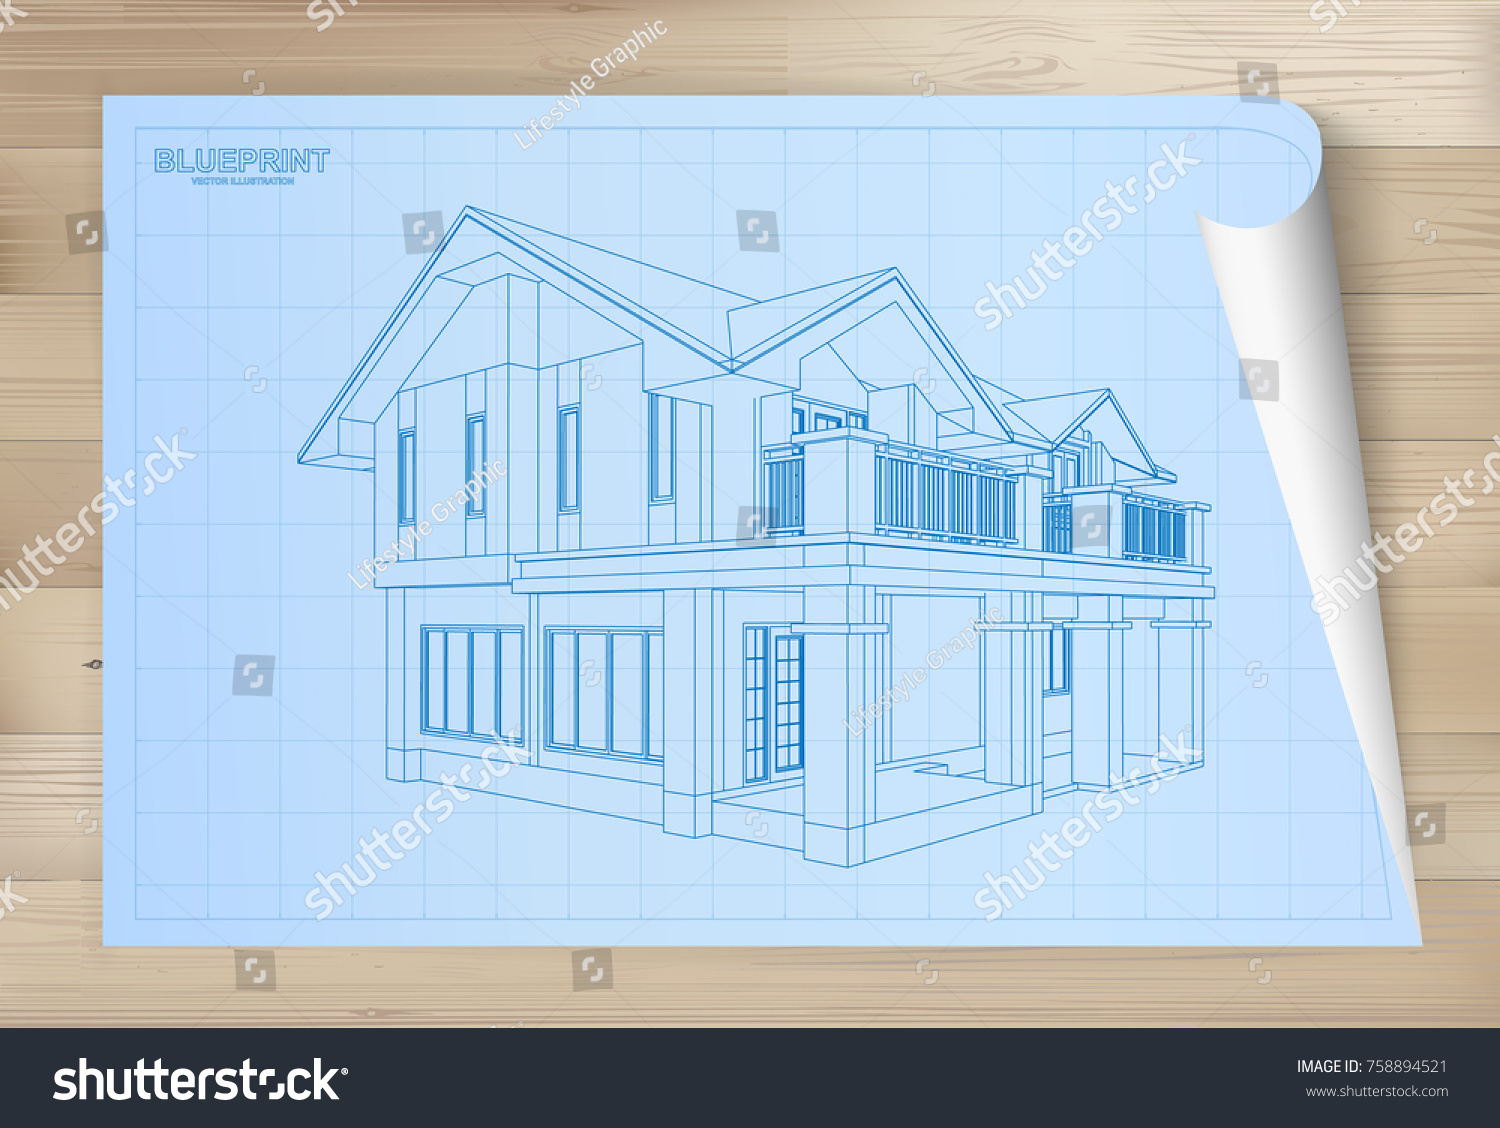 Idea house on blueprint paper architectural stock photo photo idea of house on blueprint paper architectural drawing paper on wooden texture background vector malvernweather Choice Image